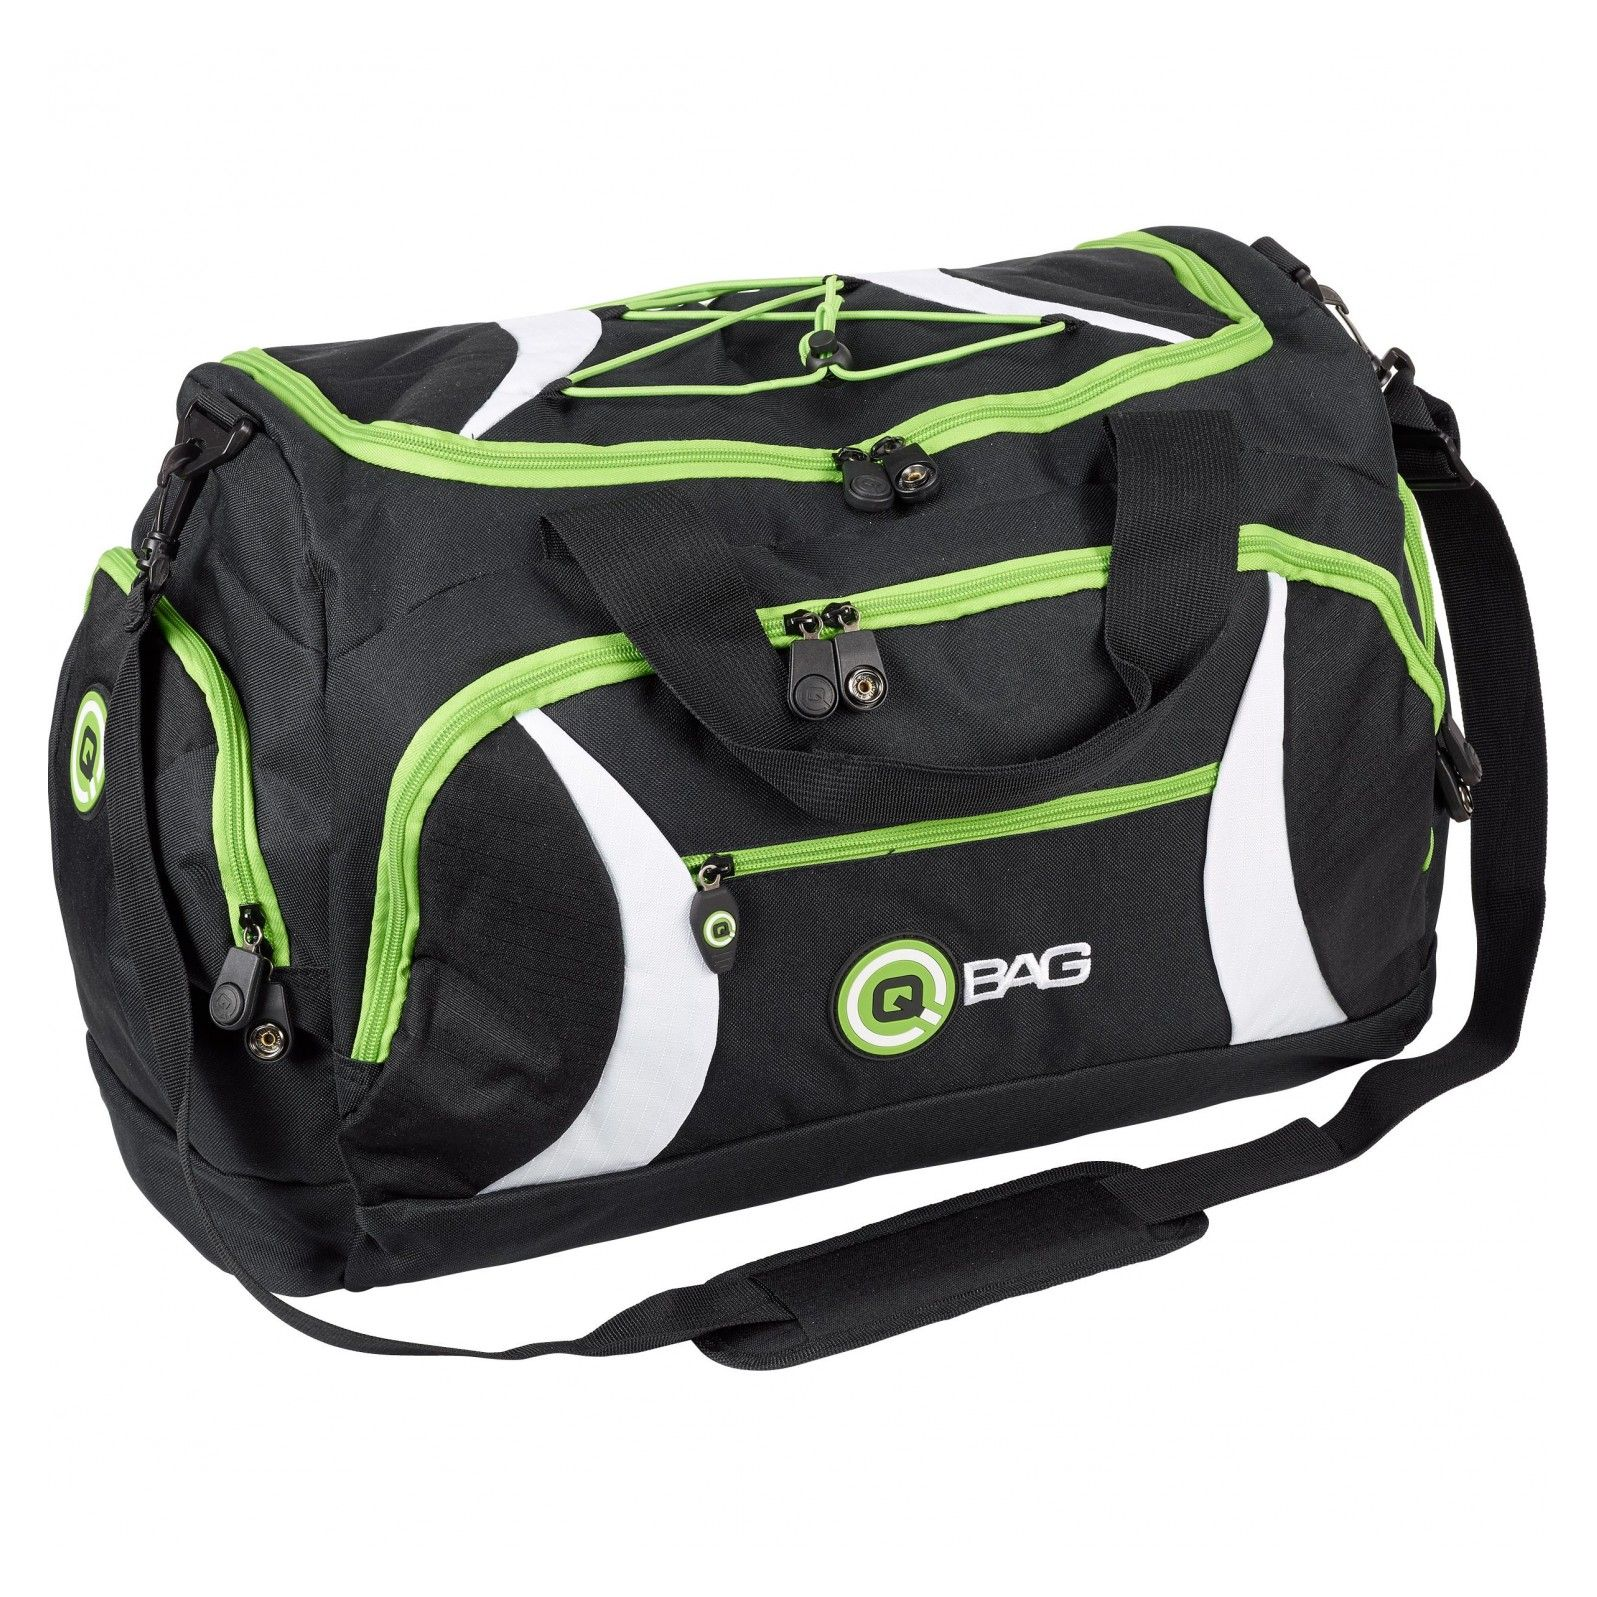 Sacoche de selle Q Bag sports 40 litres